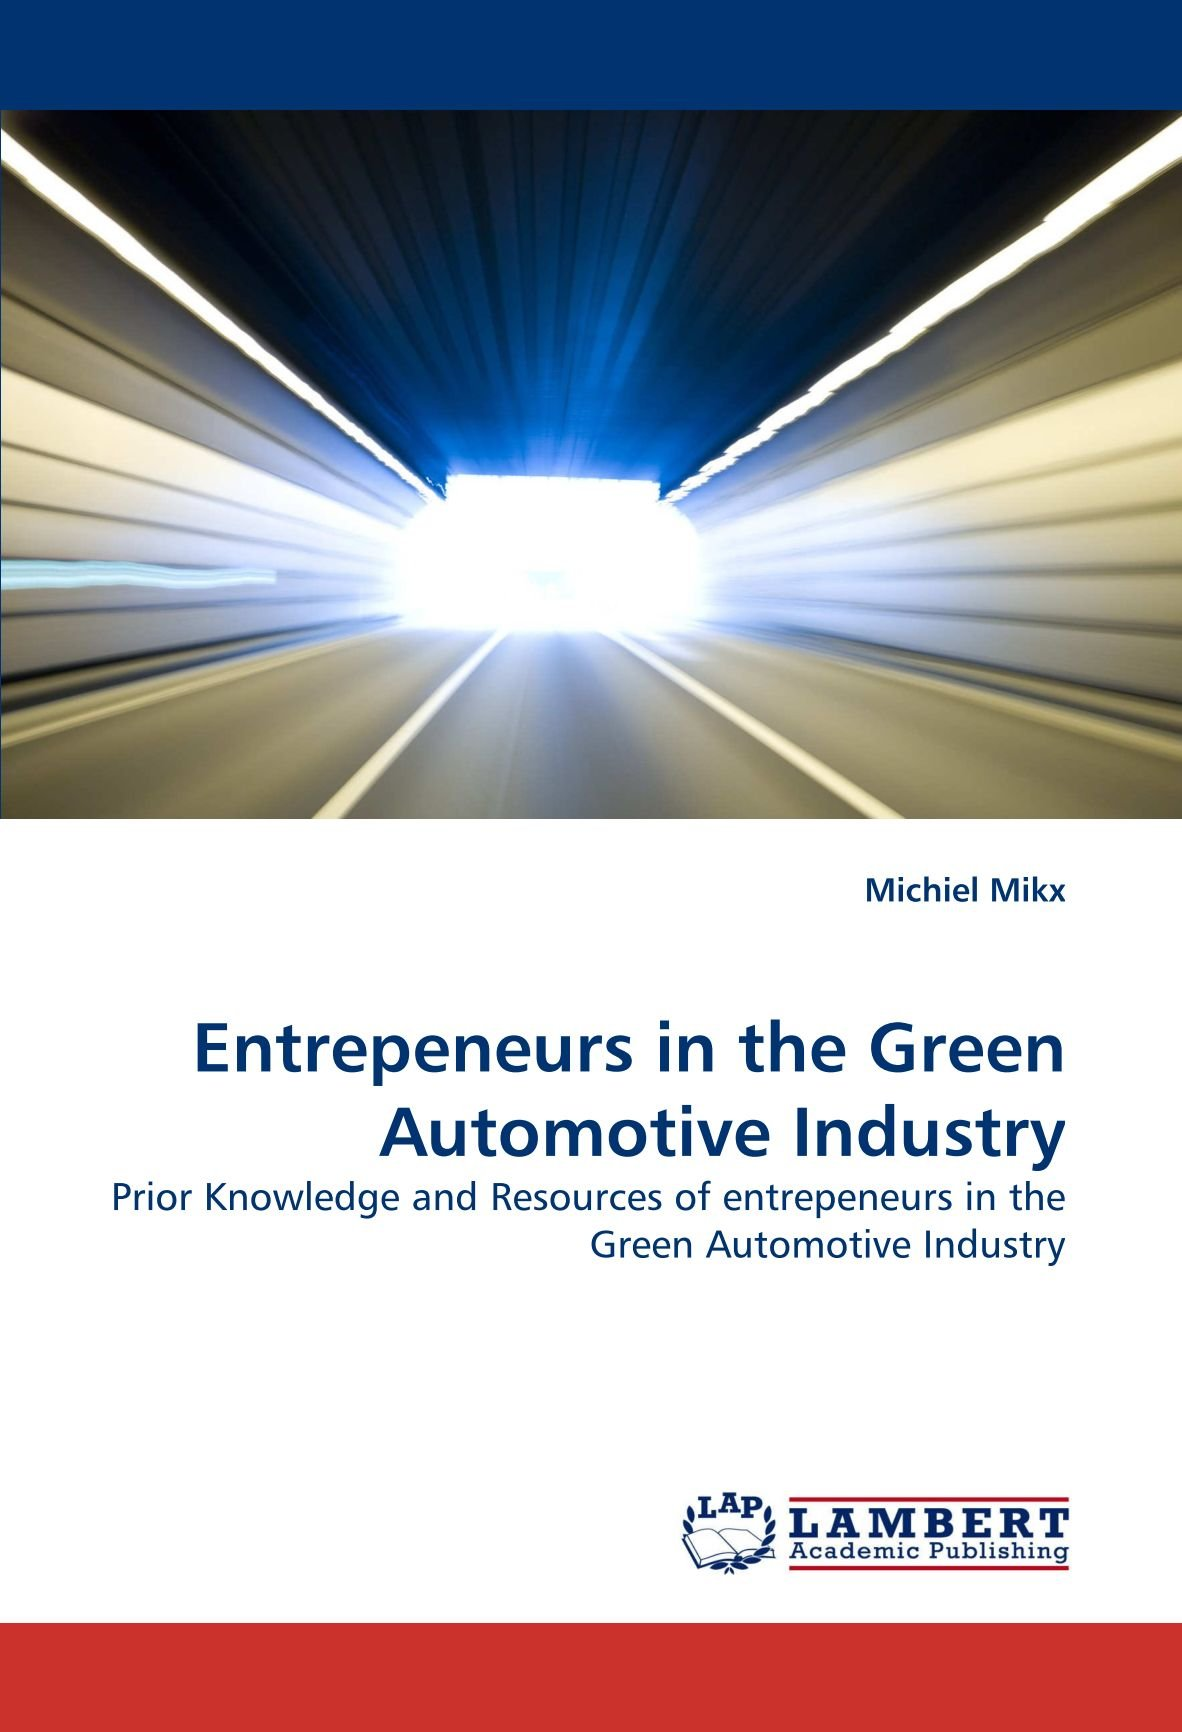 Entrepeneurs in the Green Automotive Industry: Prior Knowledge and Resources of entrepeneurs in the Green Automotive Industry